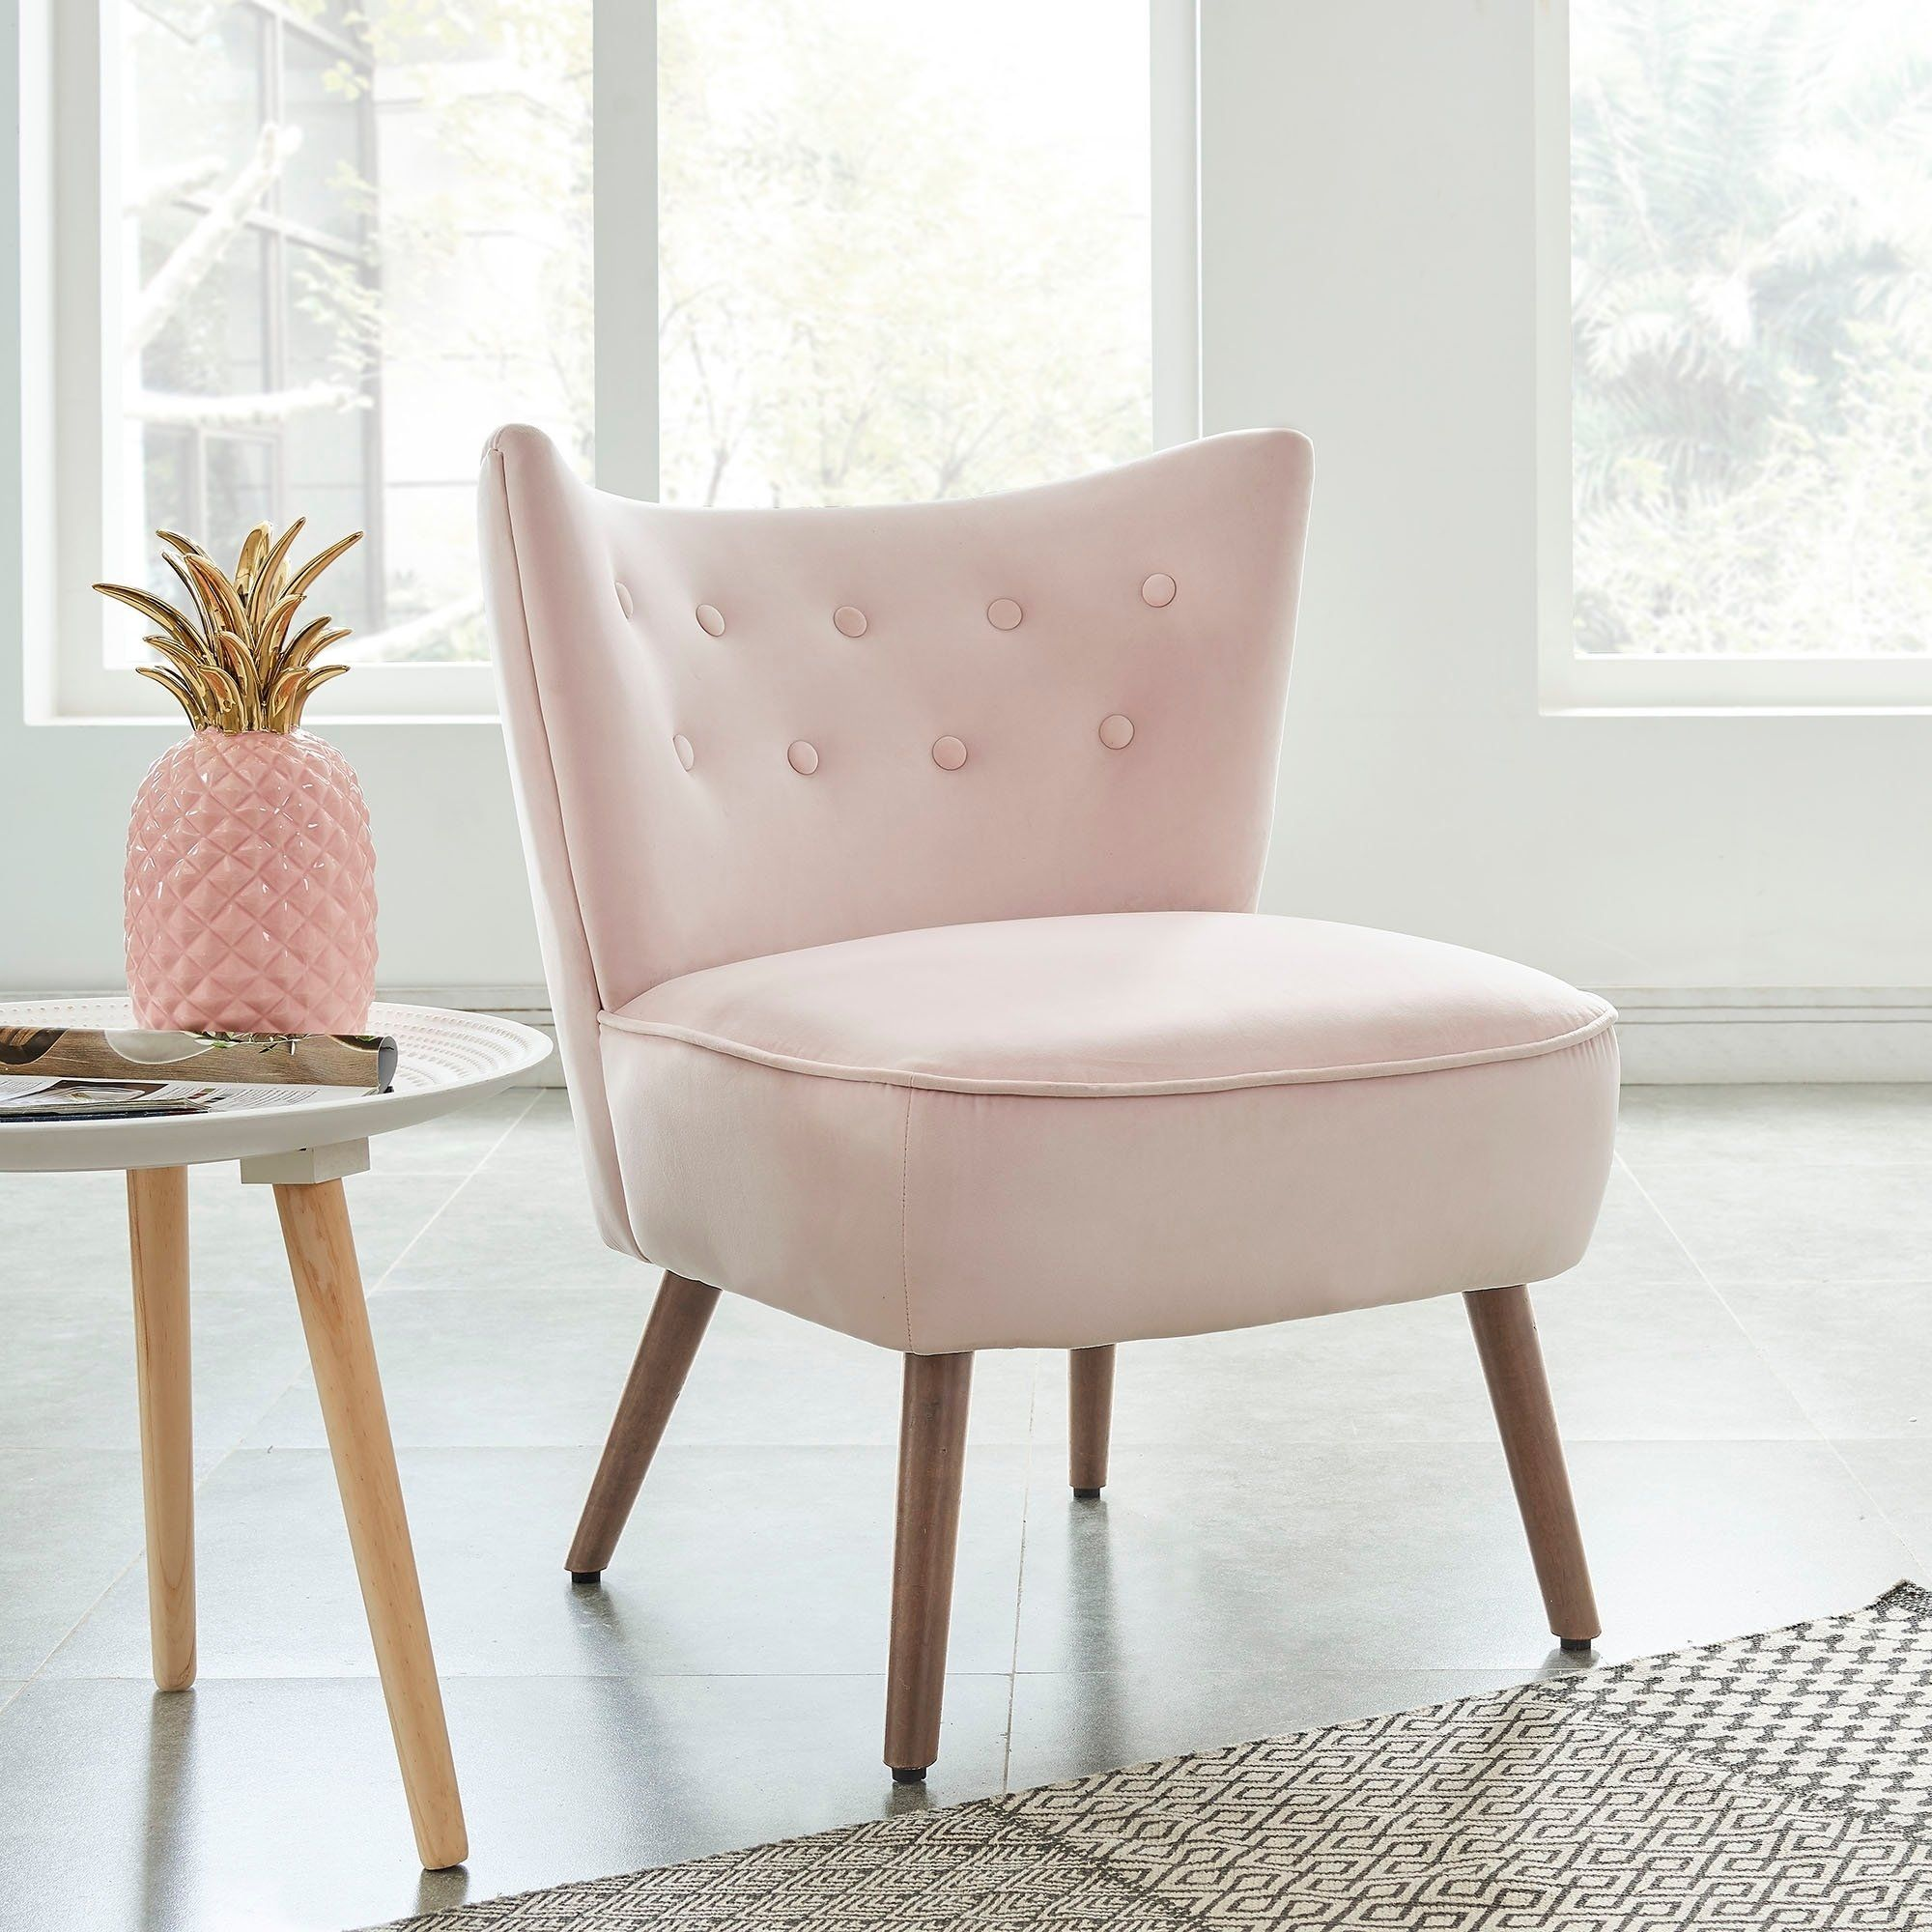 Overstock Com Online Shopping Bedding Furniture Electronics Jewelry Clothing More Pink Accents Living Room Accent Chairs Living Room Accents